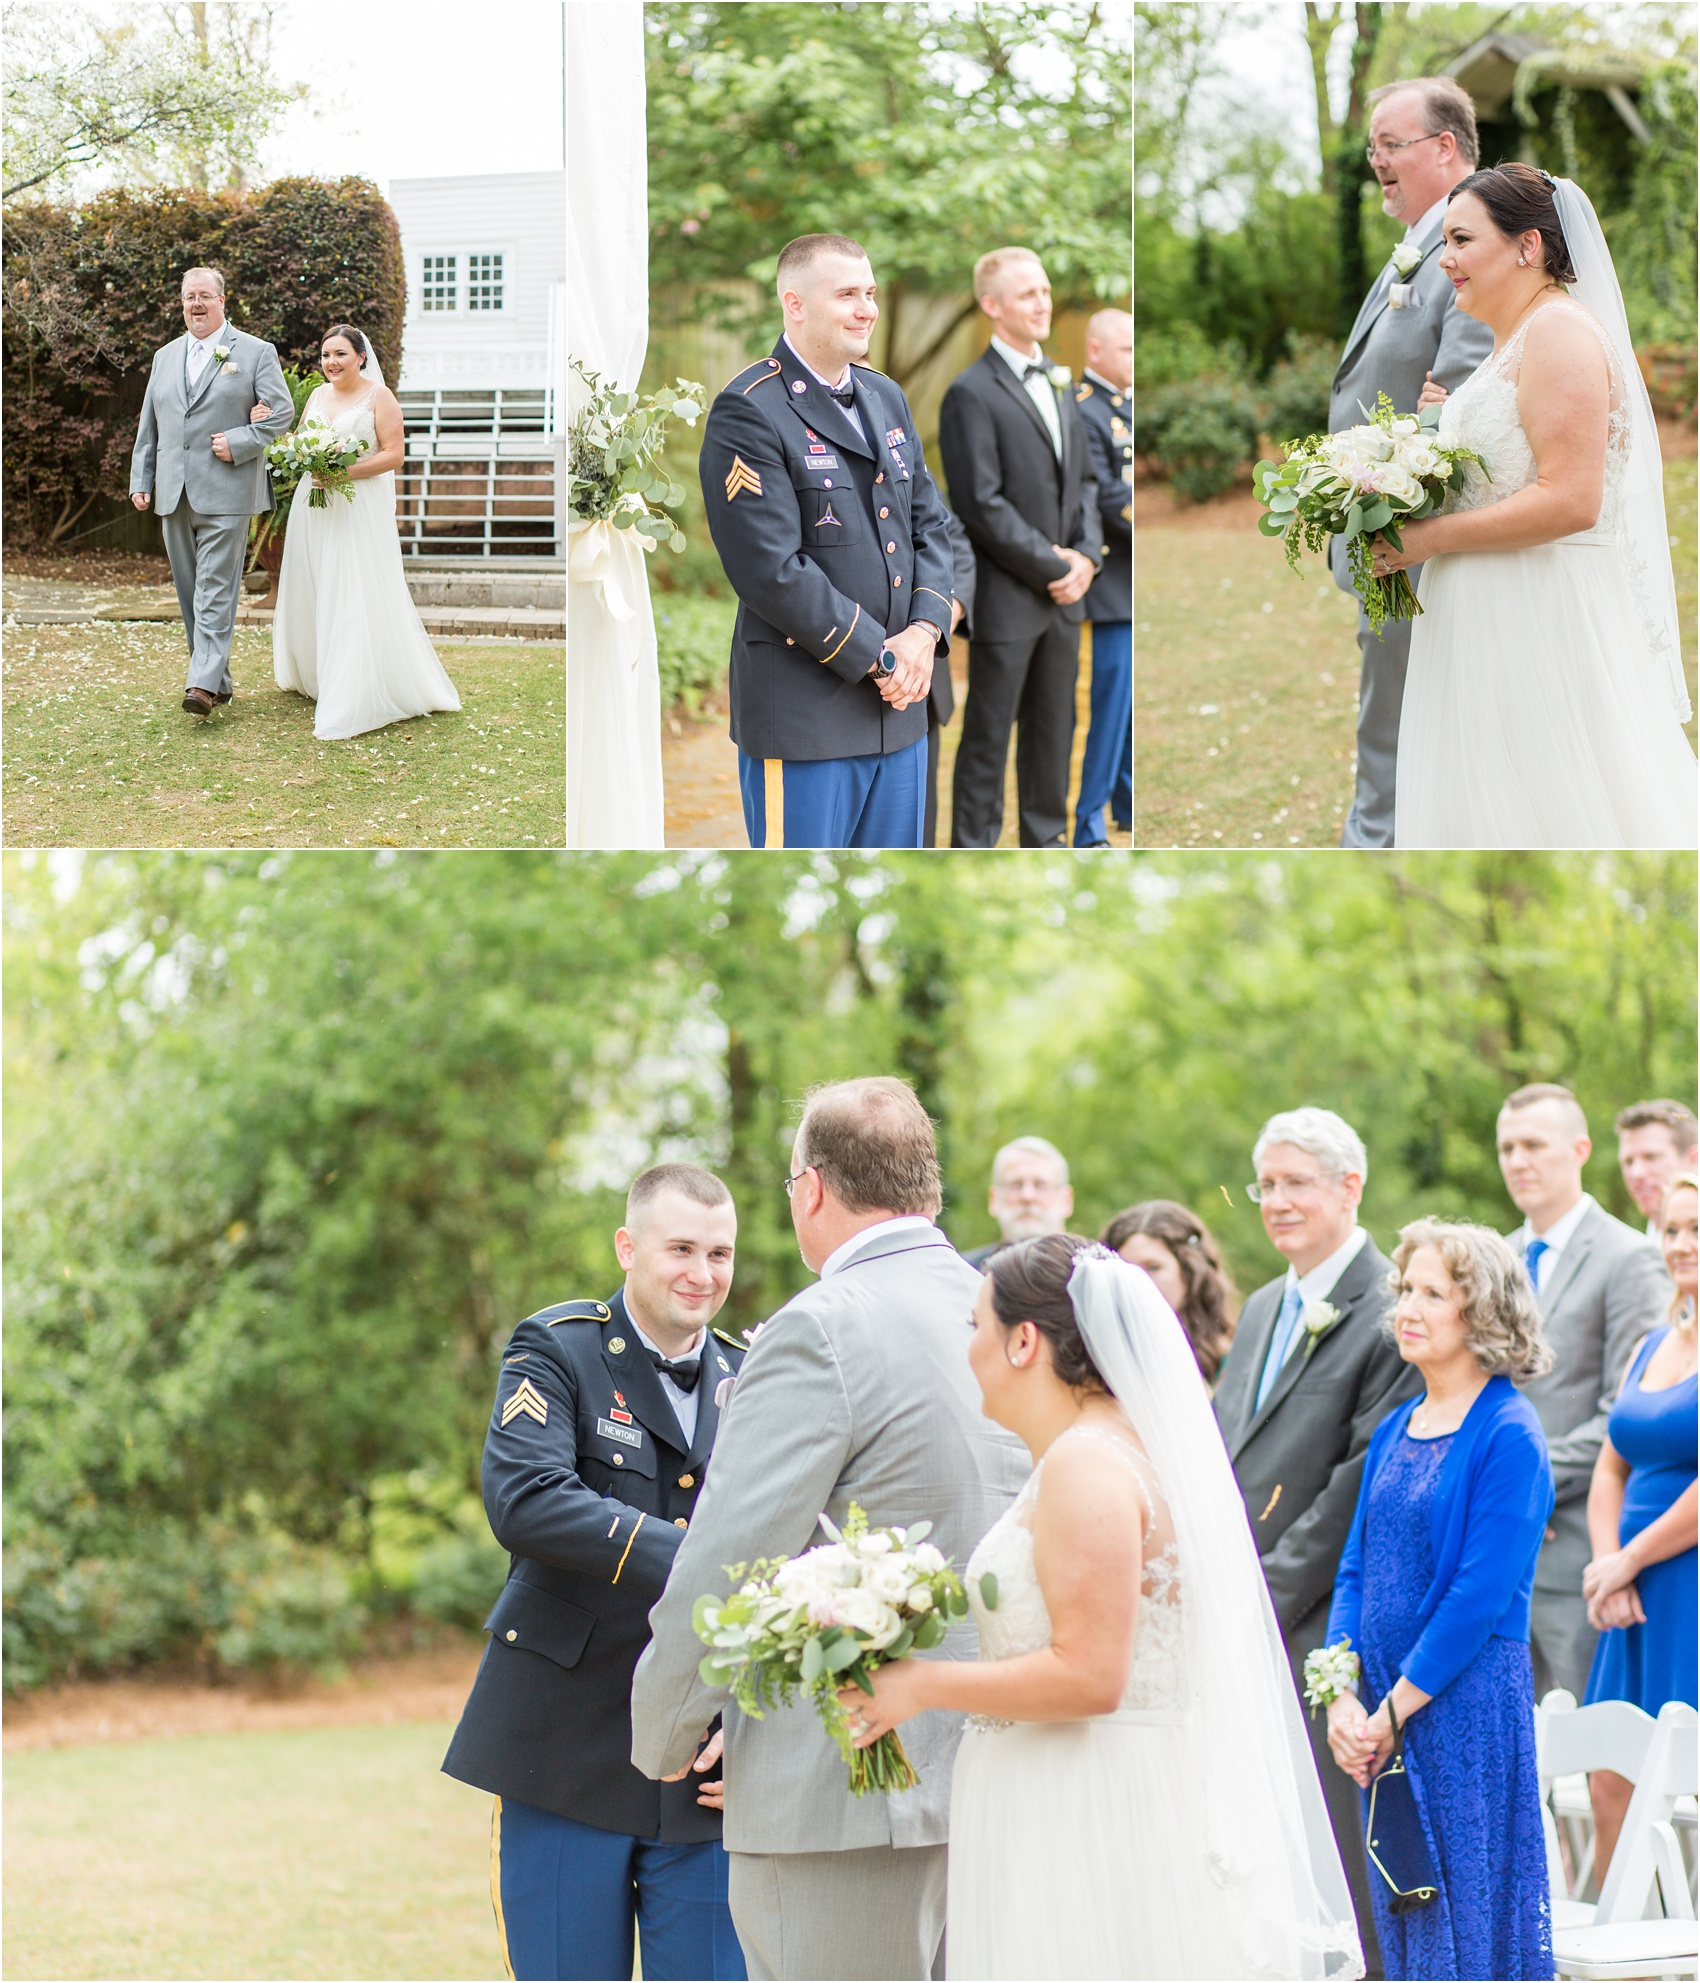 Savannah Eve Photography- Newton Wedding- Blog-92.jpg